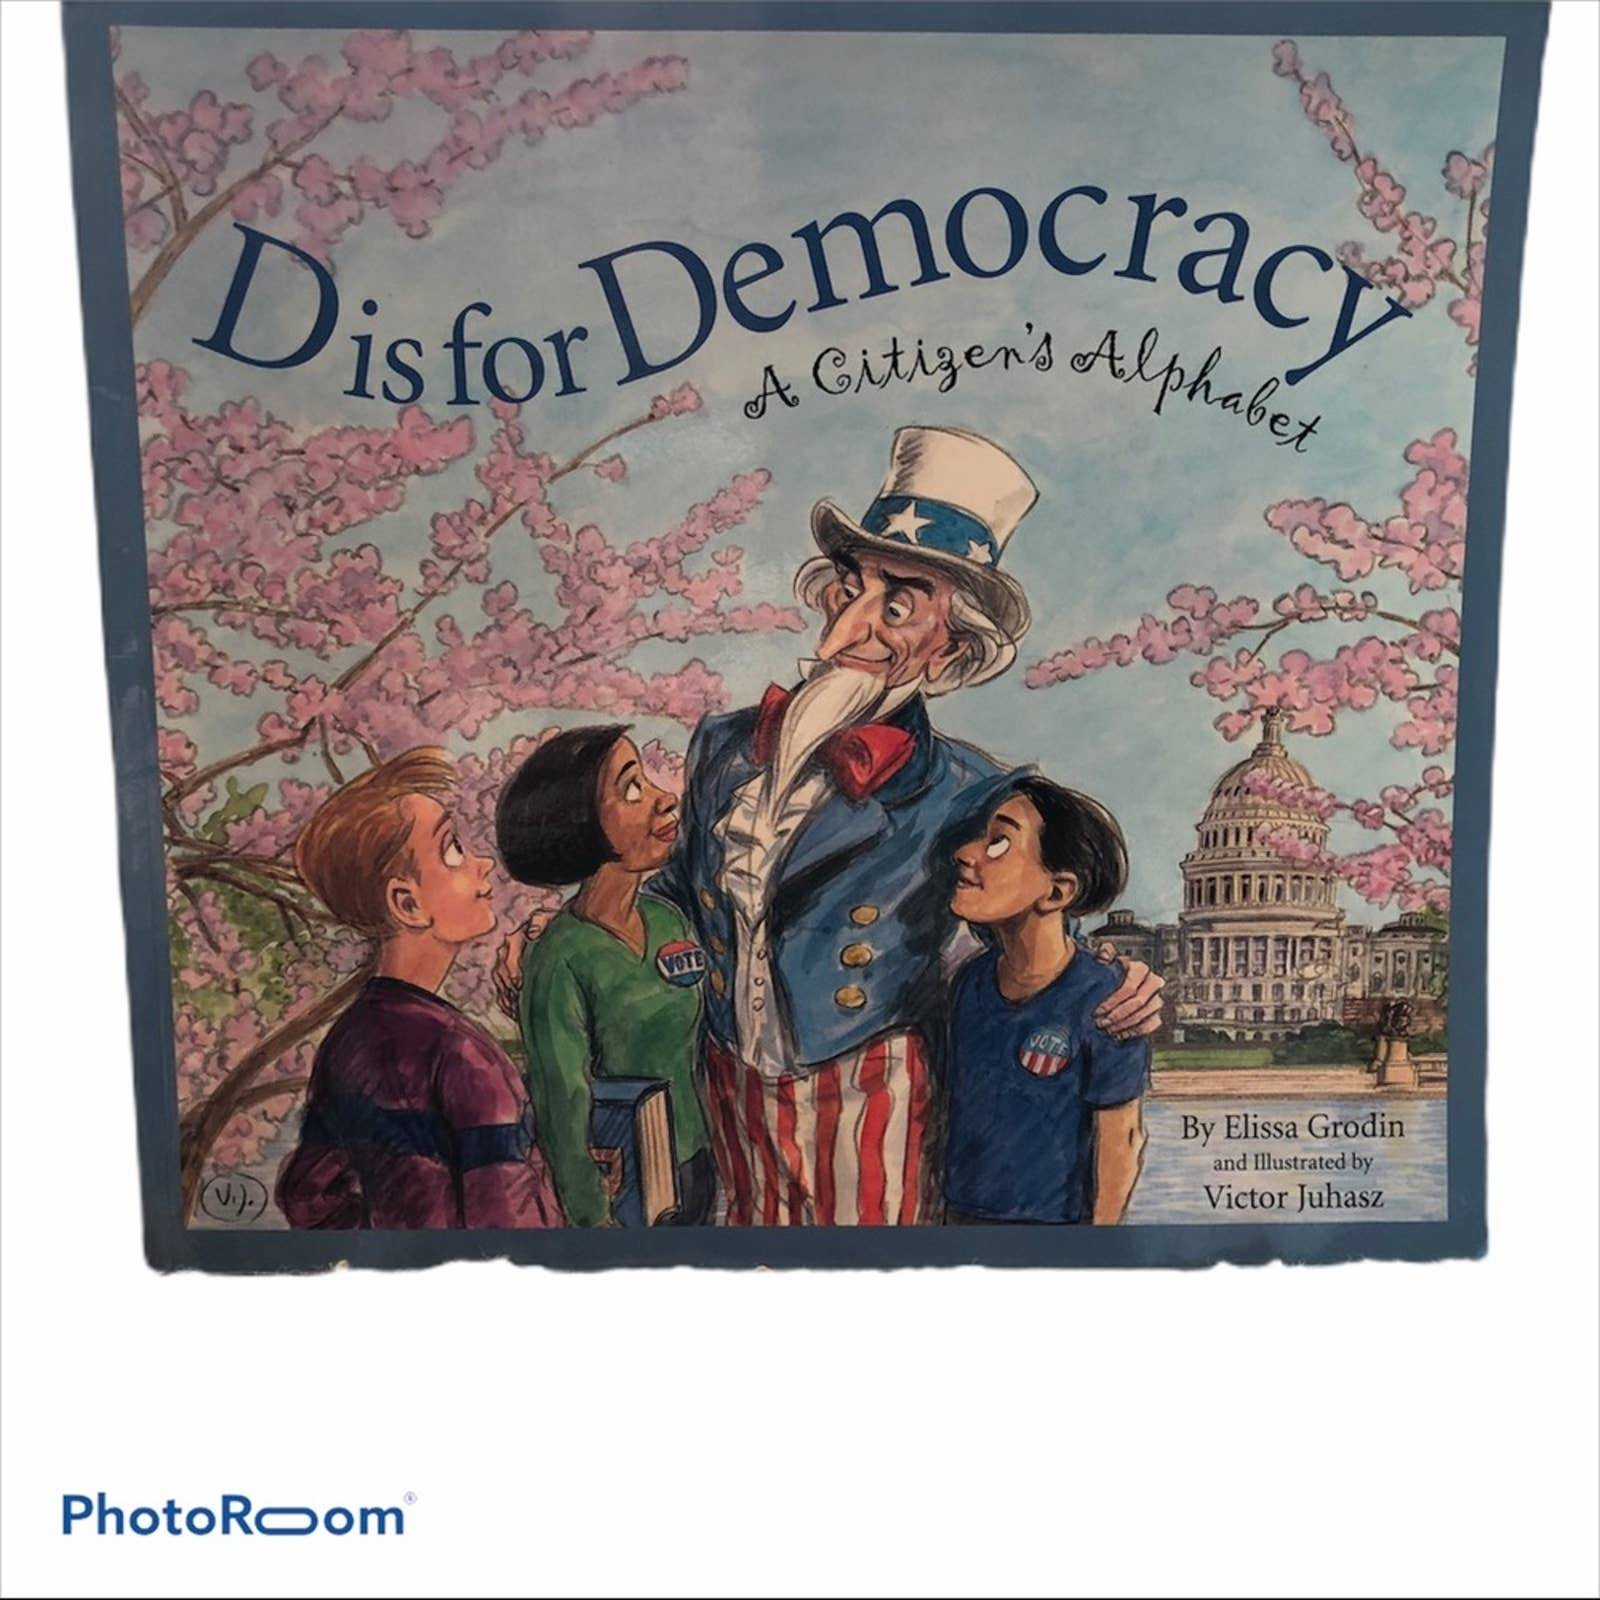 D is for Democracy paperback book